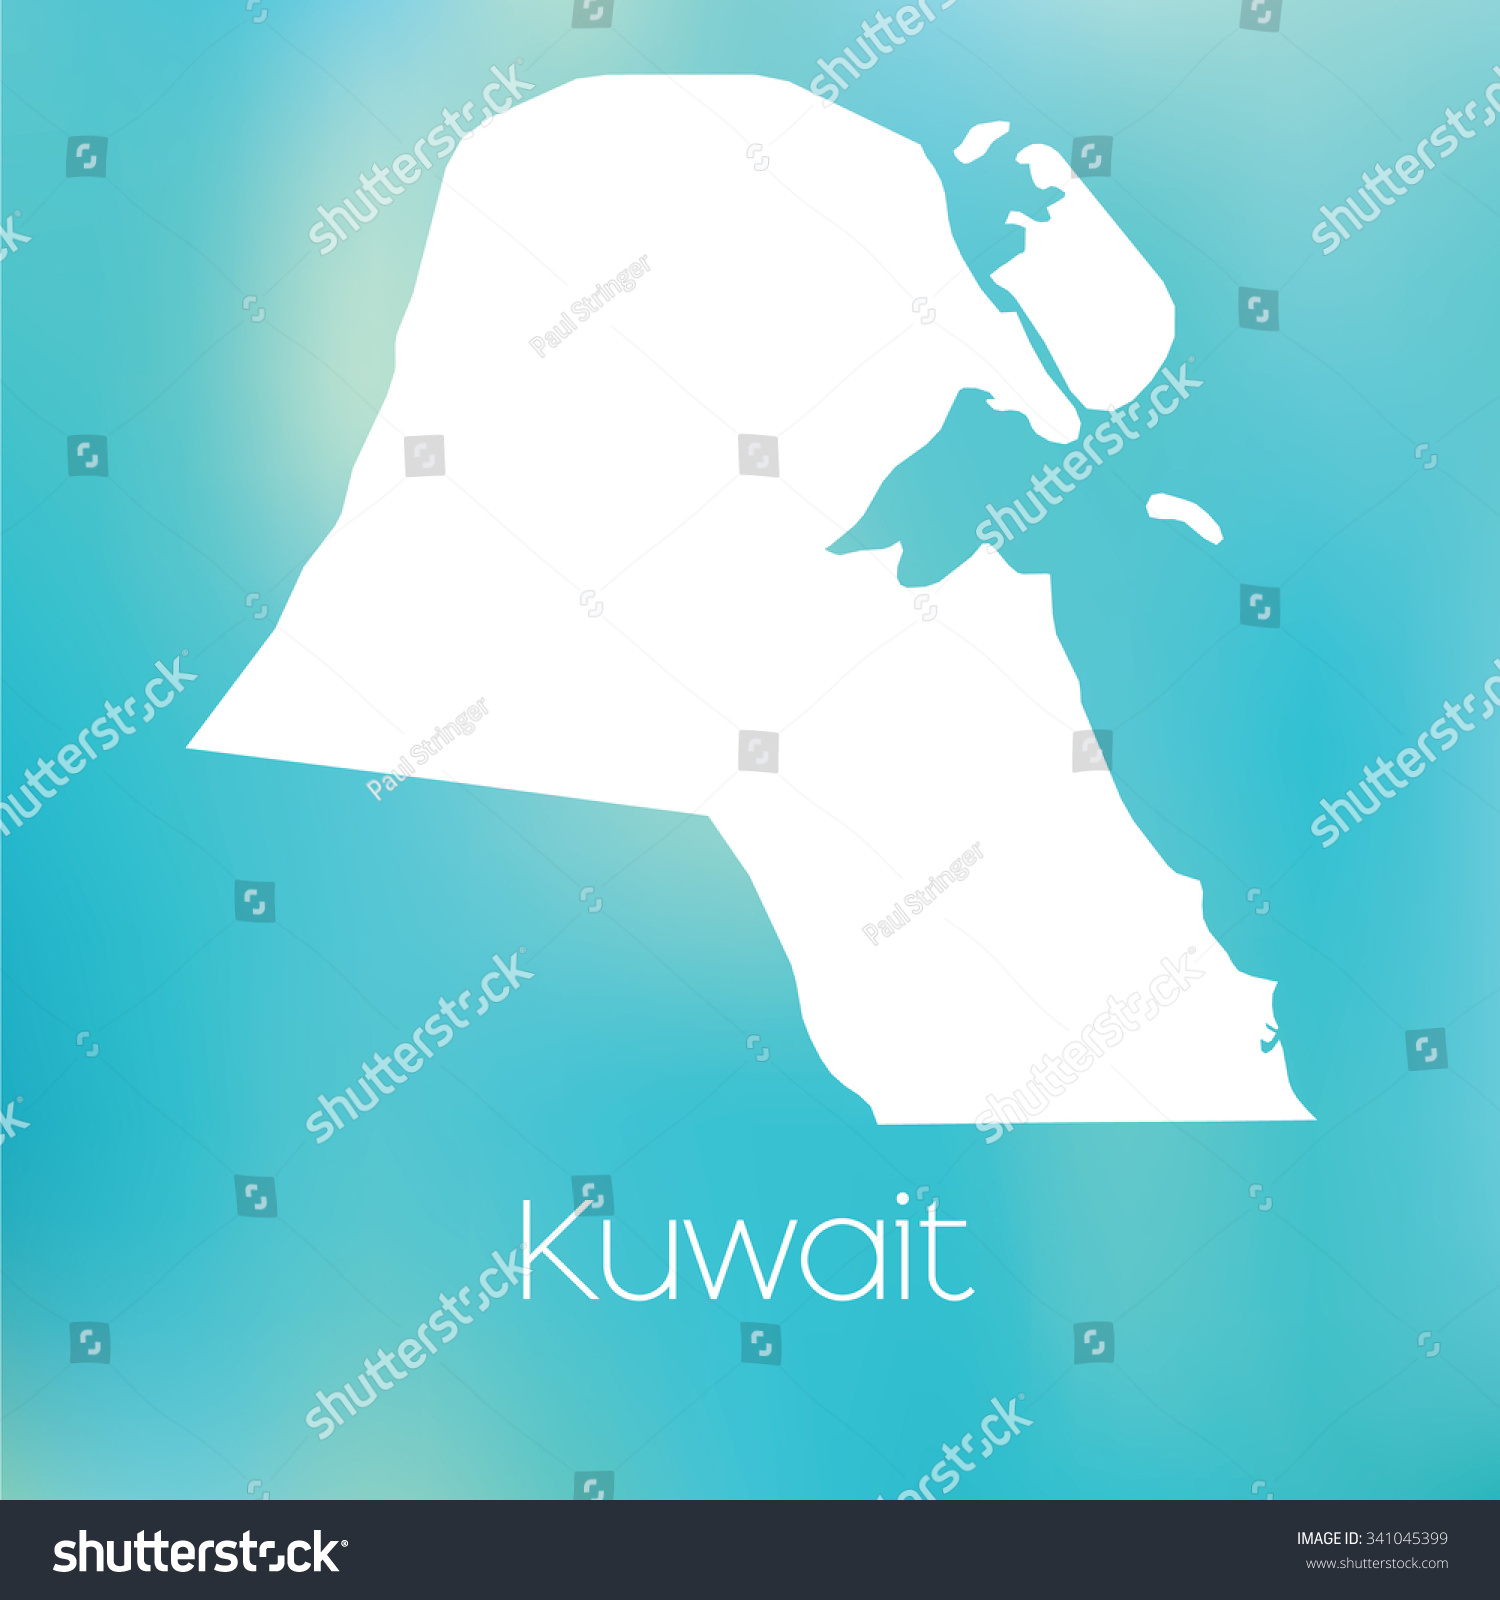 Map Country Kuwait Stock Vector (Royalty Free) 341045399 - Shutterstock